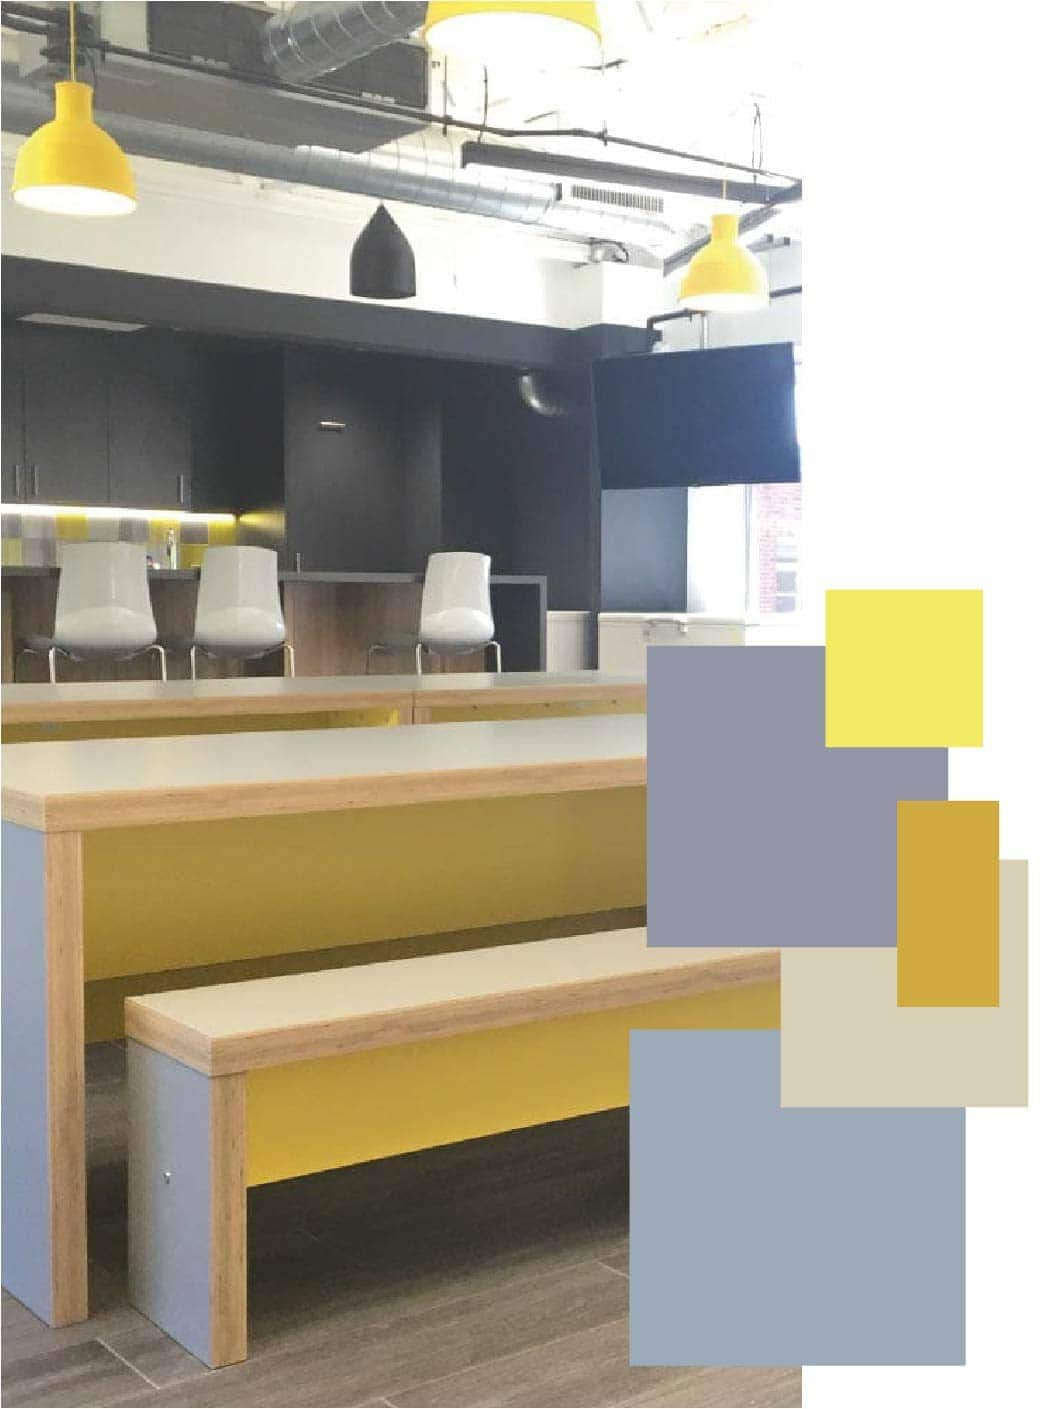 How To Use S S 2021 Colour Trends In Office Interiors Tsunami Axis